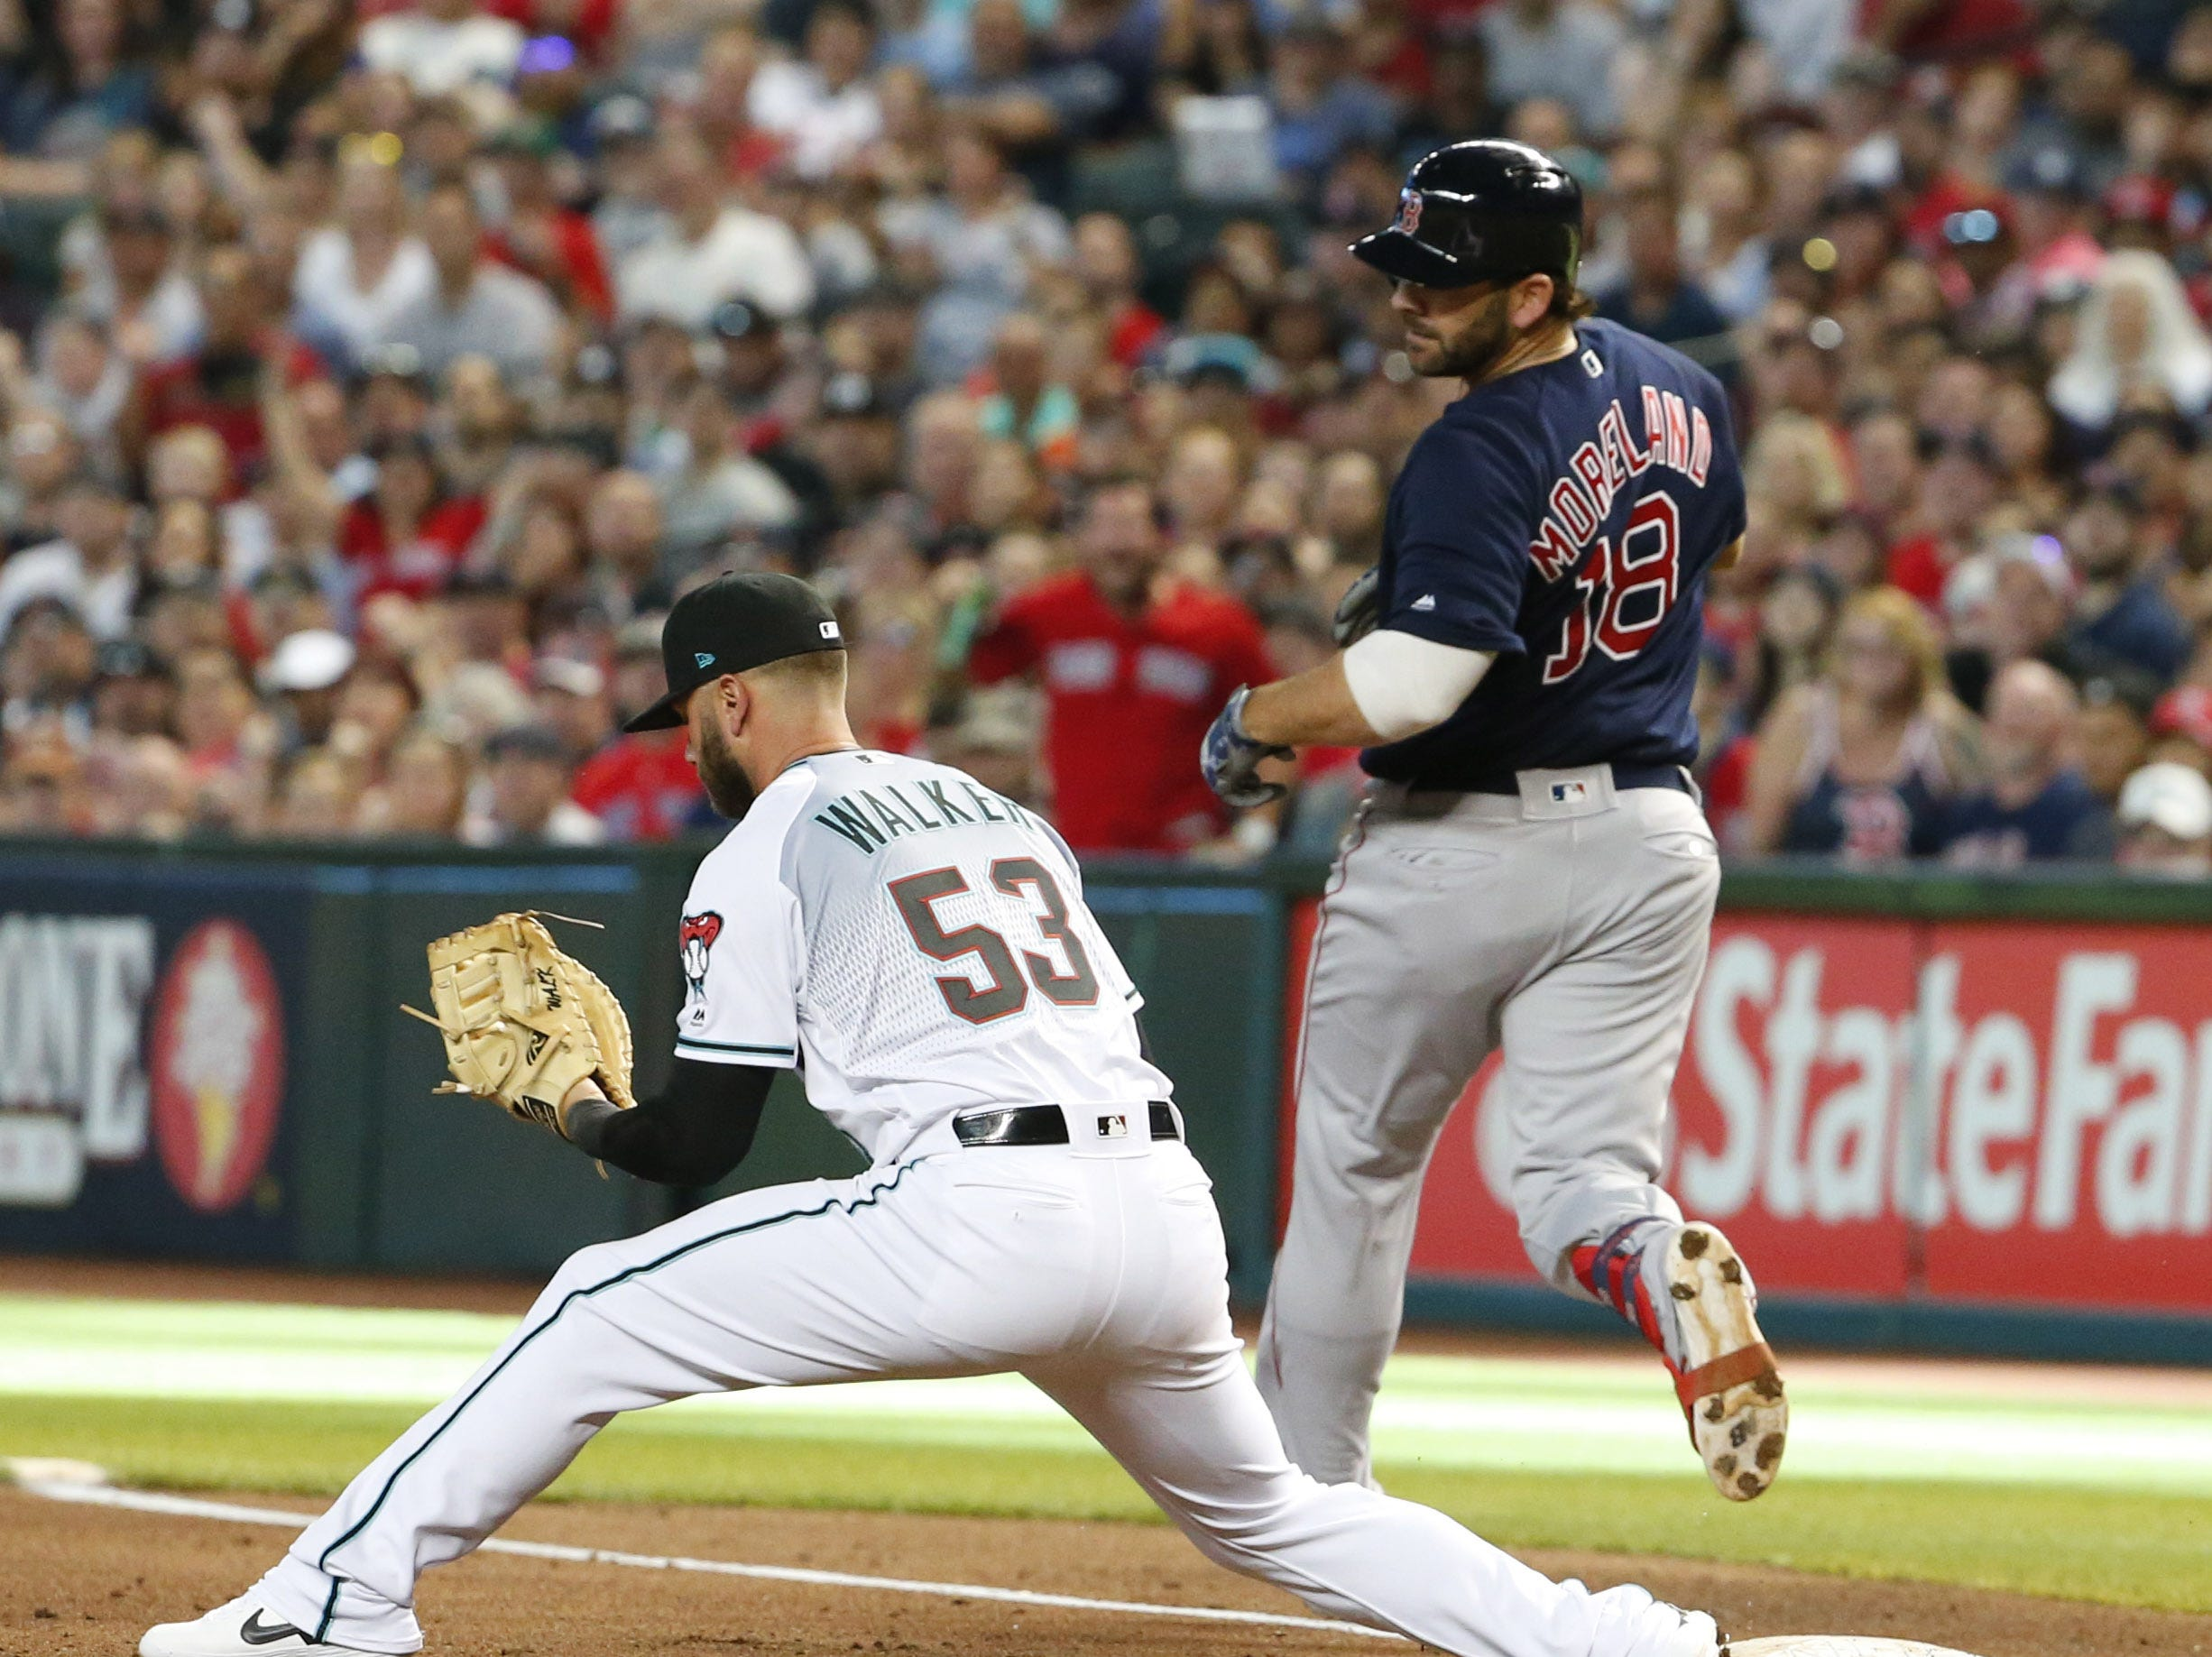 Arizona Diamondbacks first baseman Christian Walker (53) outs Boston Red Sox first baseman Mitch Moreland (18) during a MLB Opening Day game at Chase Field in Phoenix on April 5.